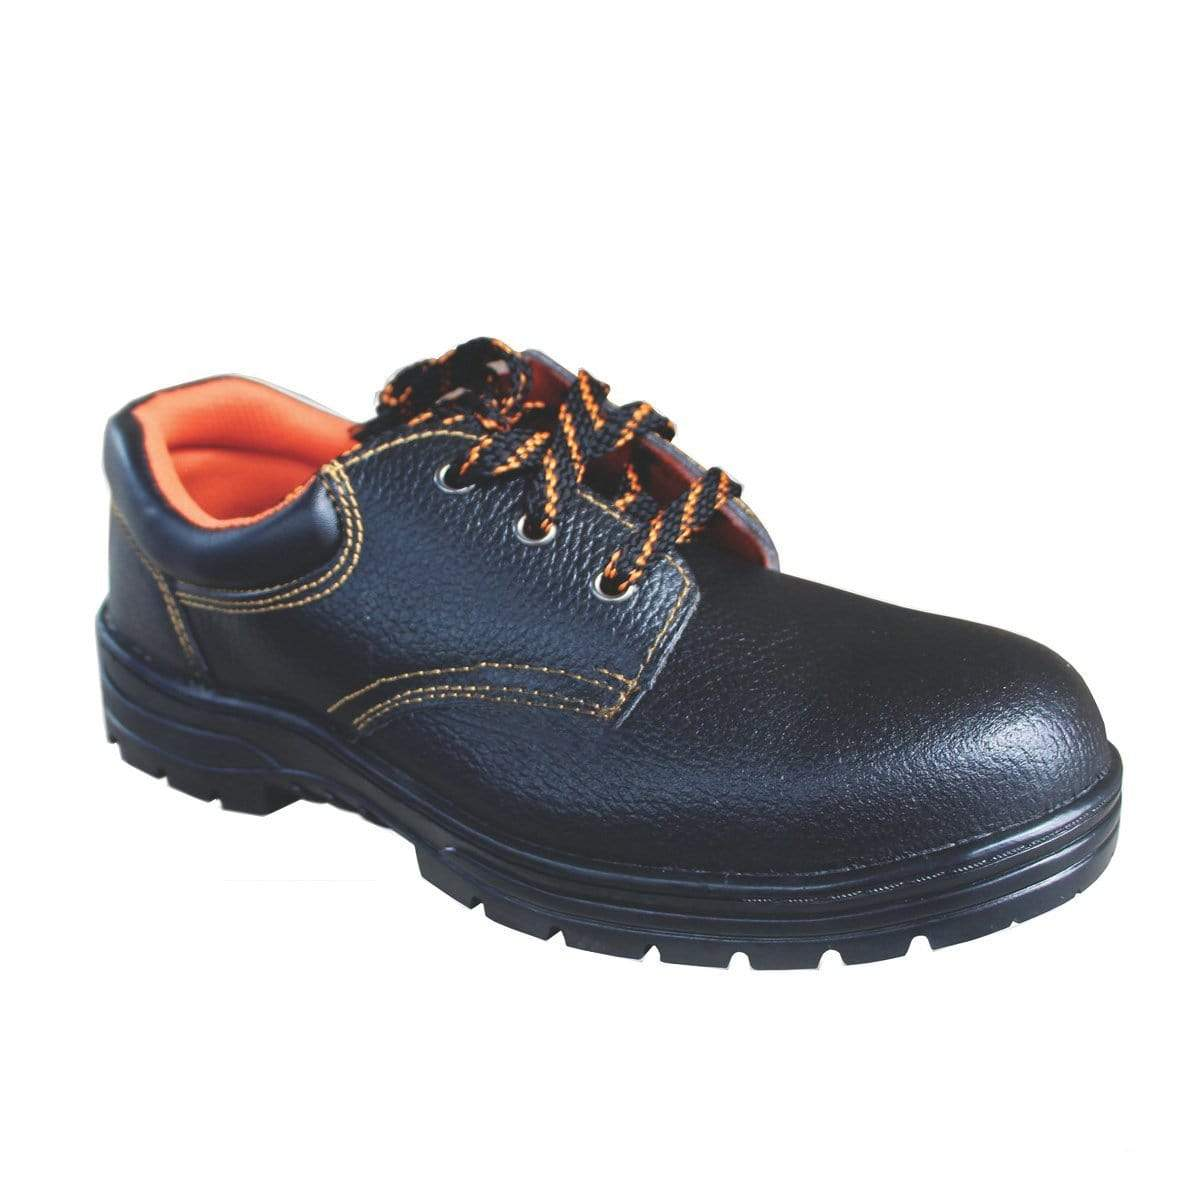 ANEKA Worker Safety Shoes Safety Boots Steel Toe Cap Kasut UK9 1000#